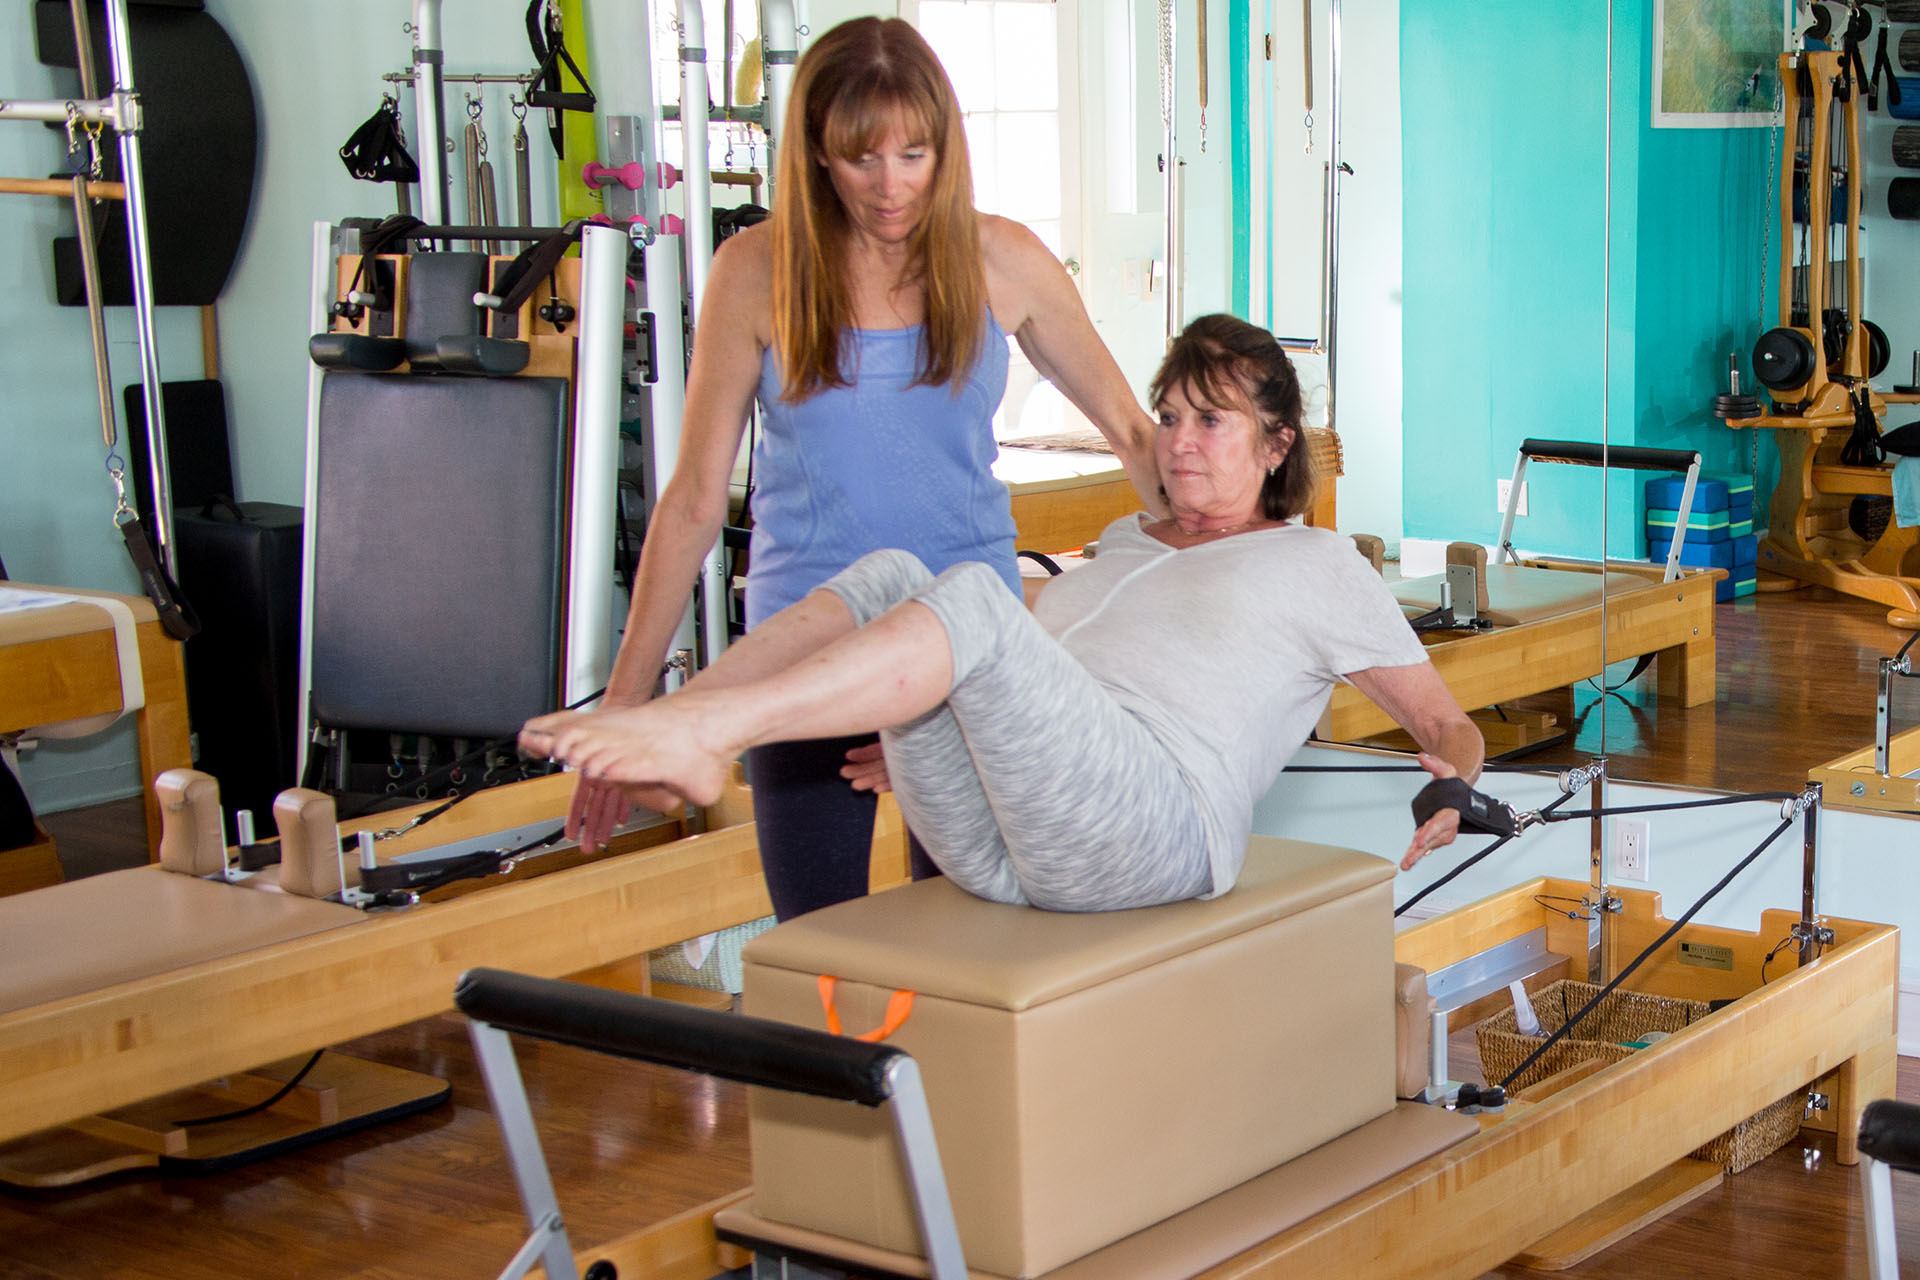 susie_personal_trainer-1